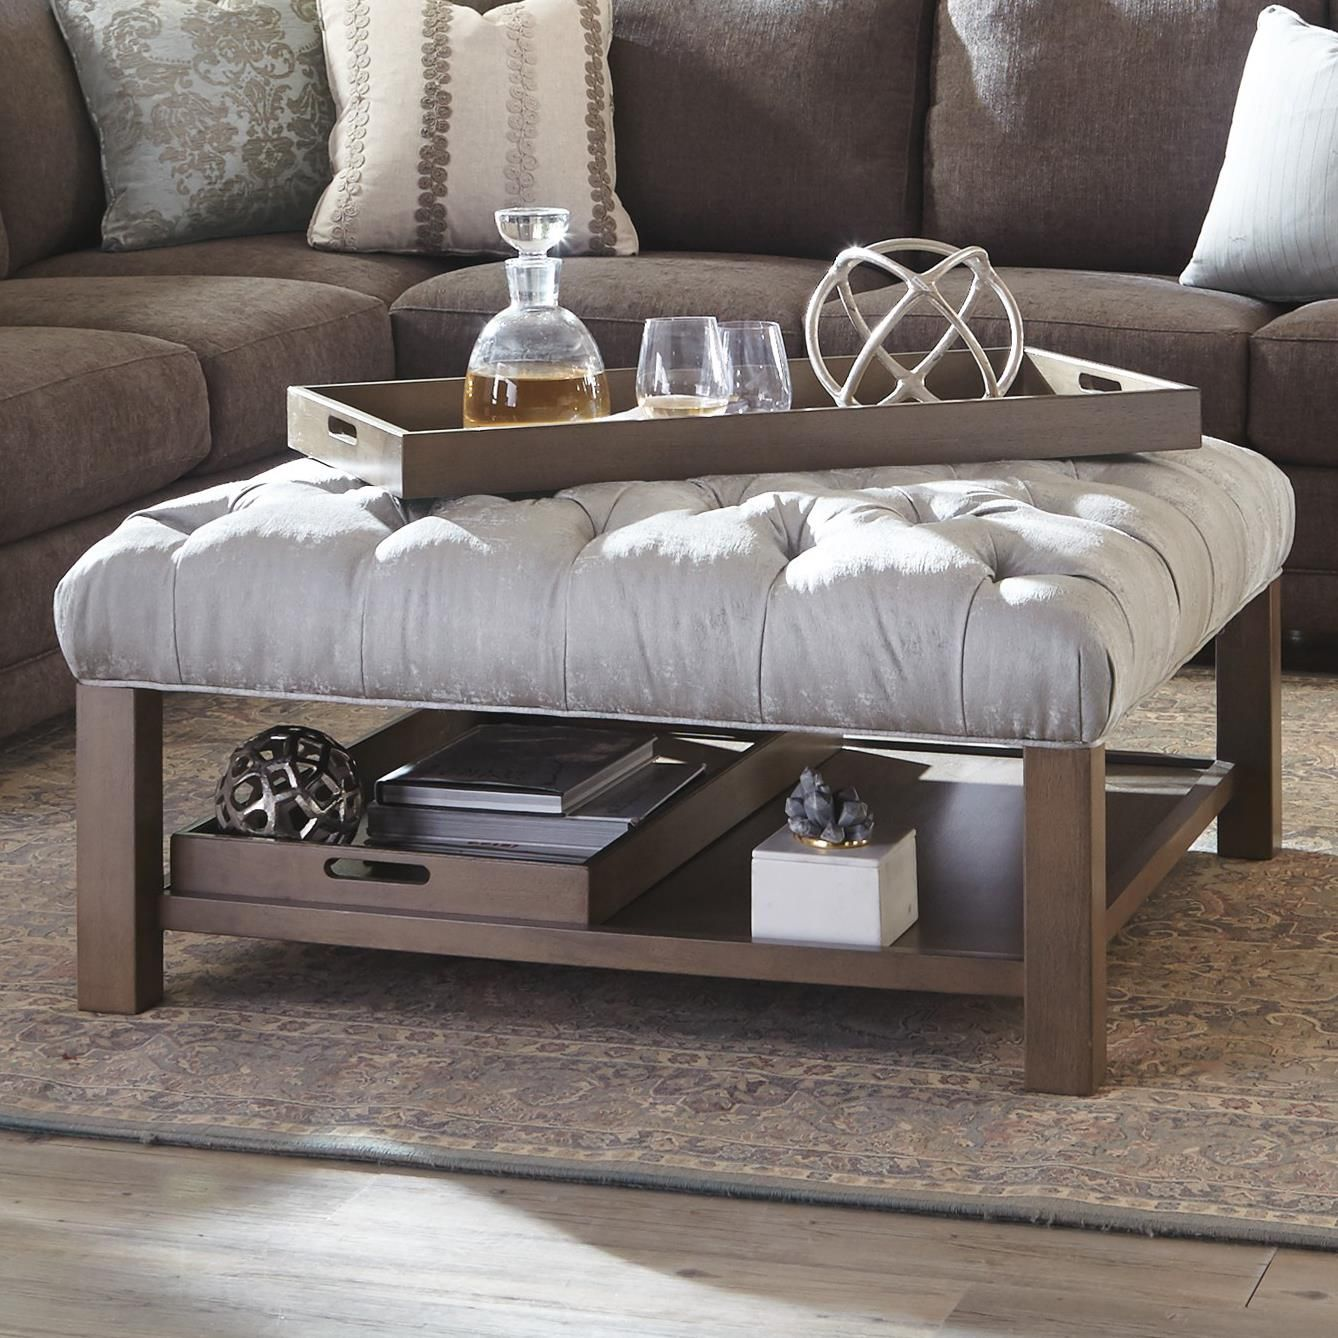 Accent Ottomans Ottoman With Storage Trayscraftmaster At Magnificent Living Room Ottoman Review